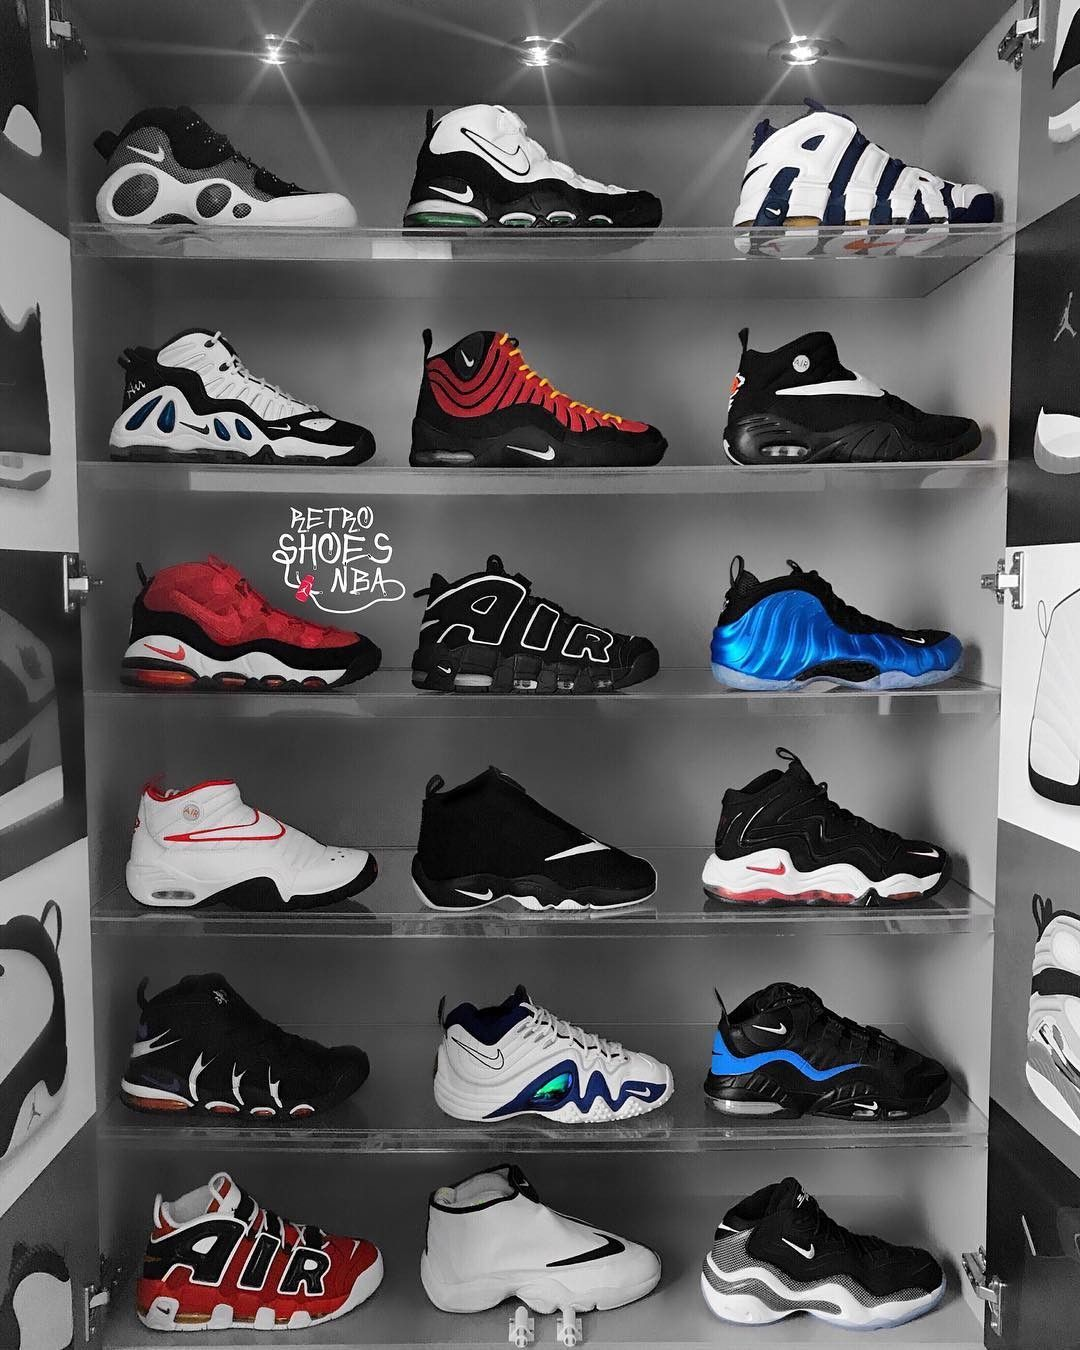 Shoes, Sneakers nike, Sneakers, Sneakers nike jordan, Shoes